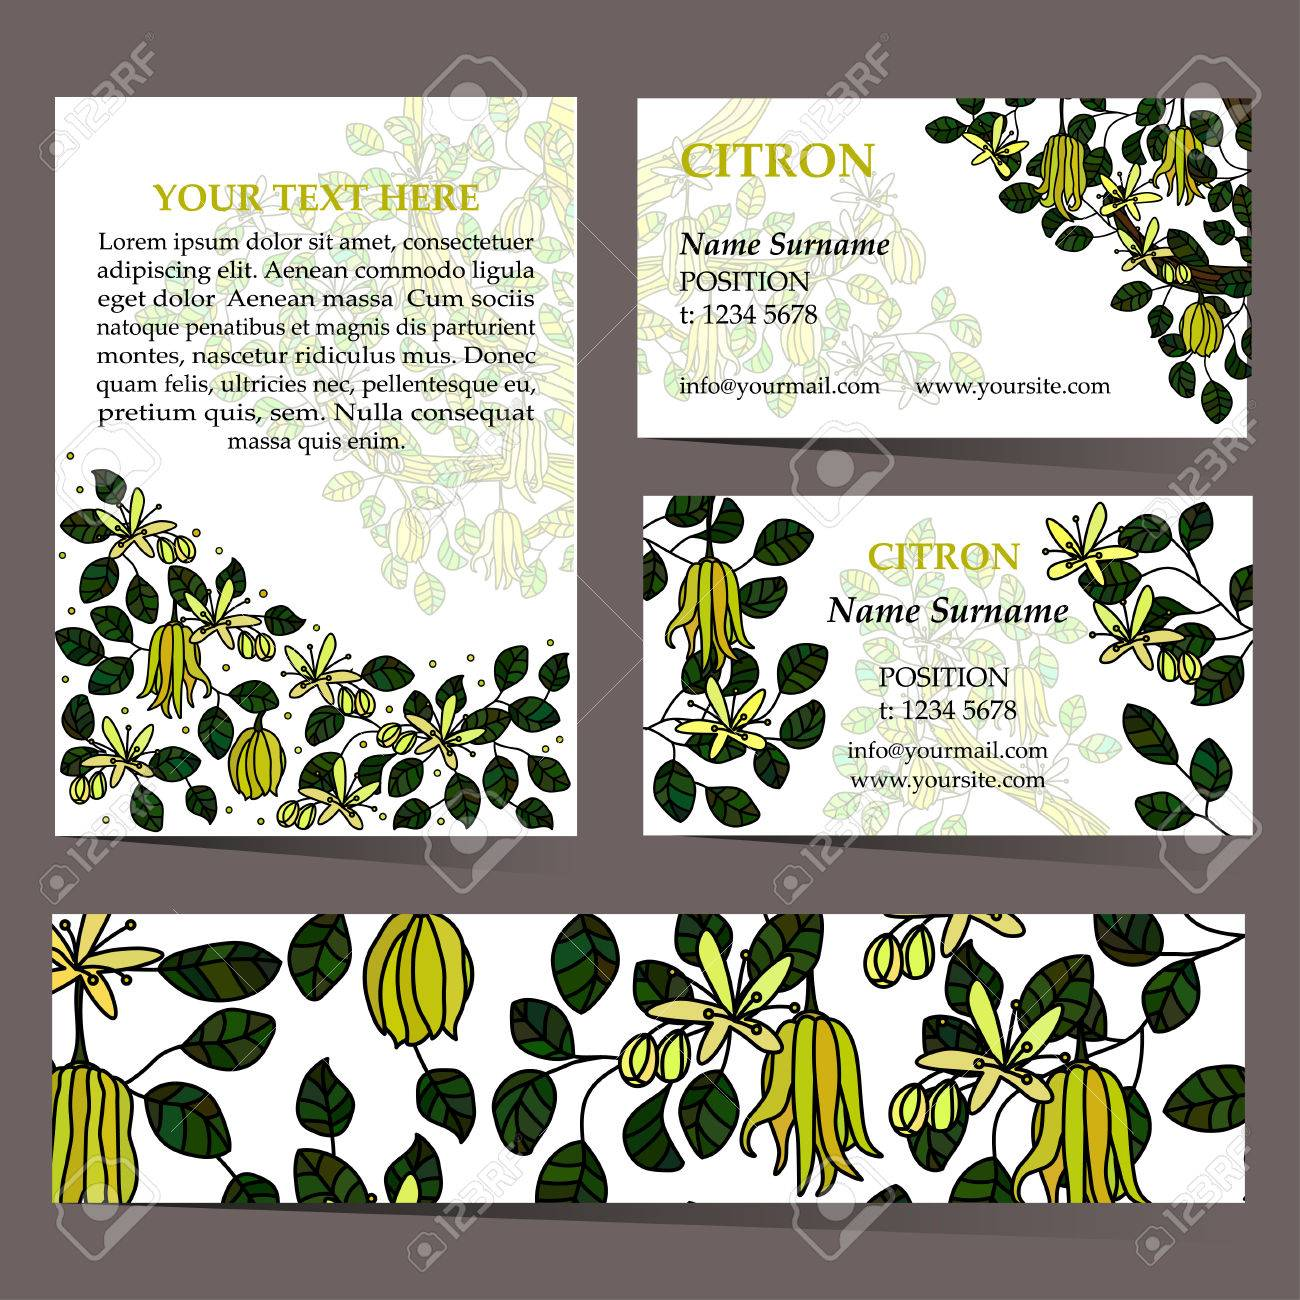 Tropical card set for different invitations, voucher, coupon